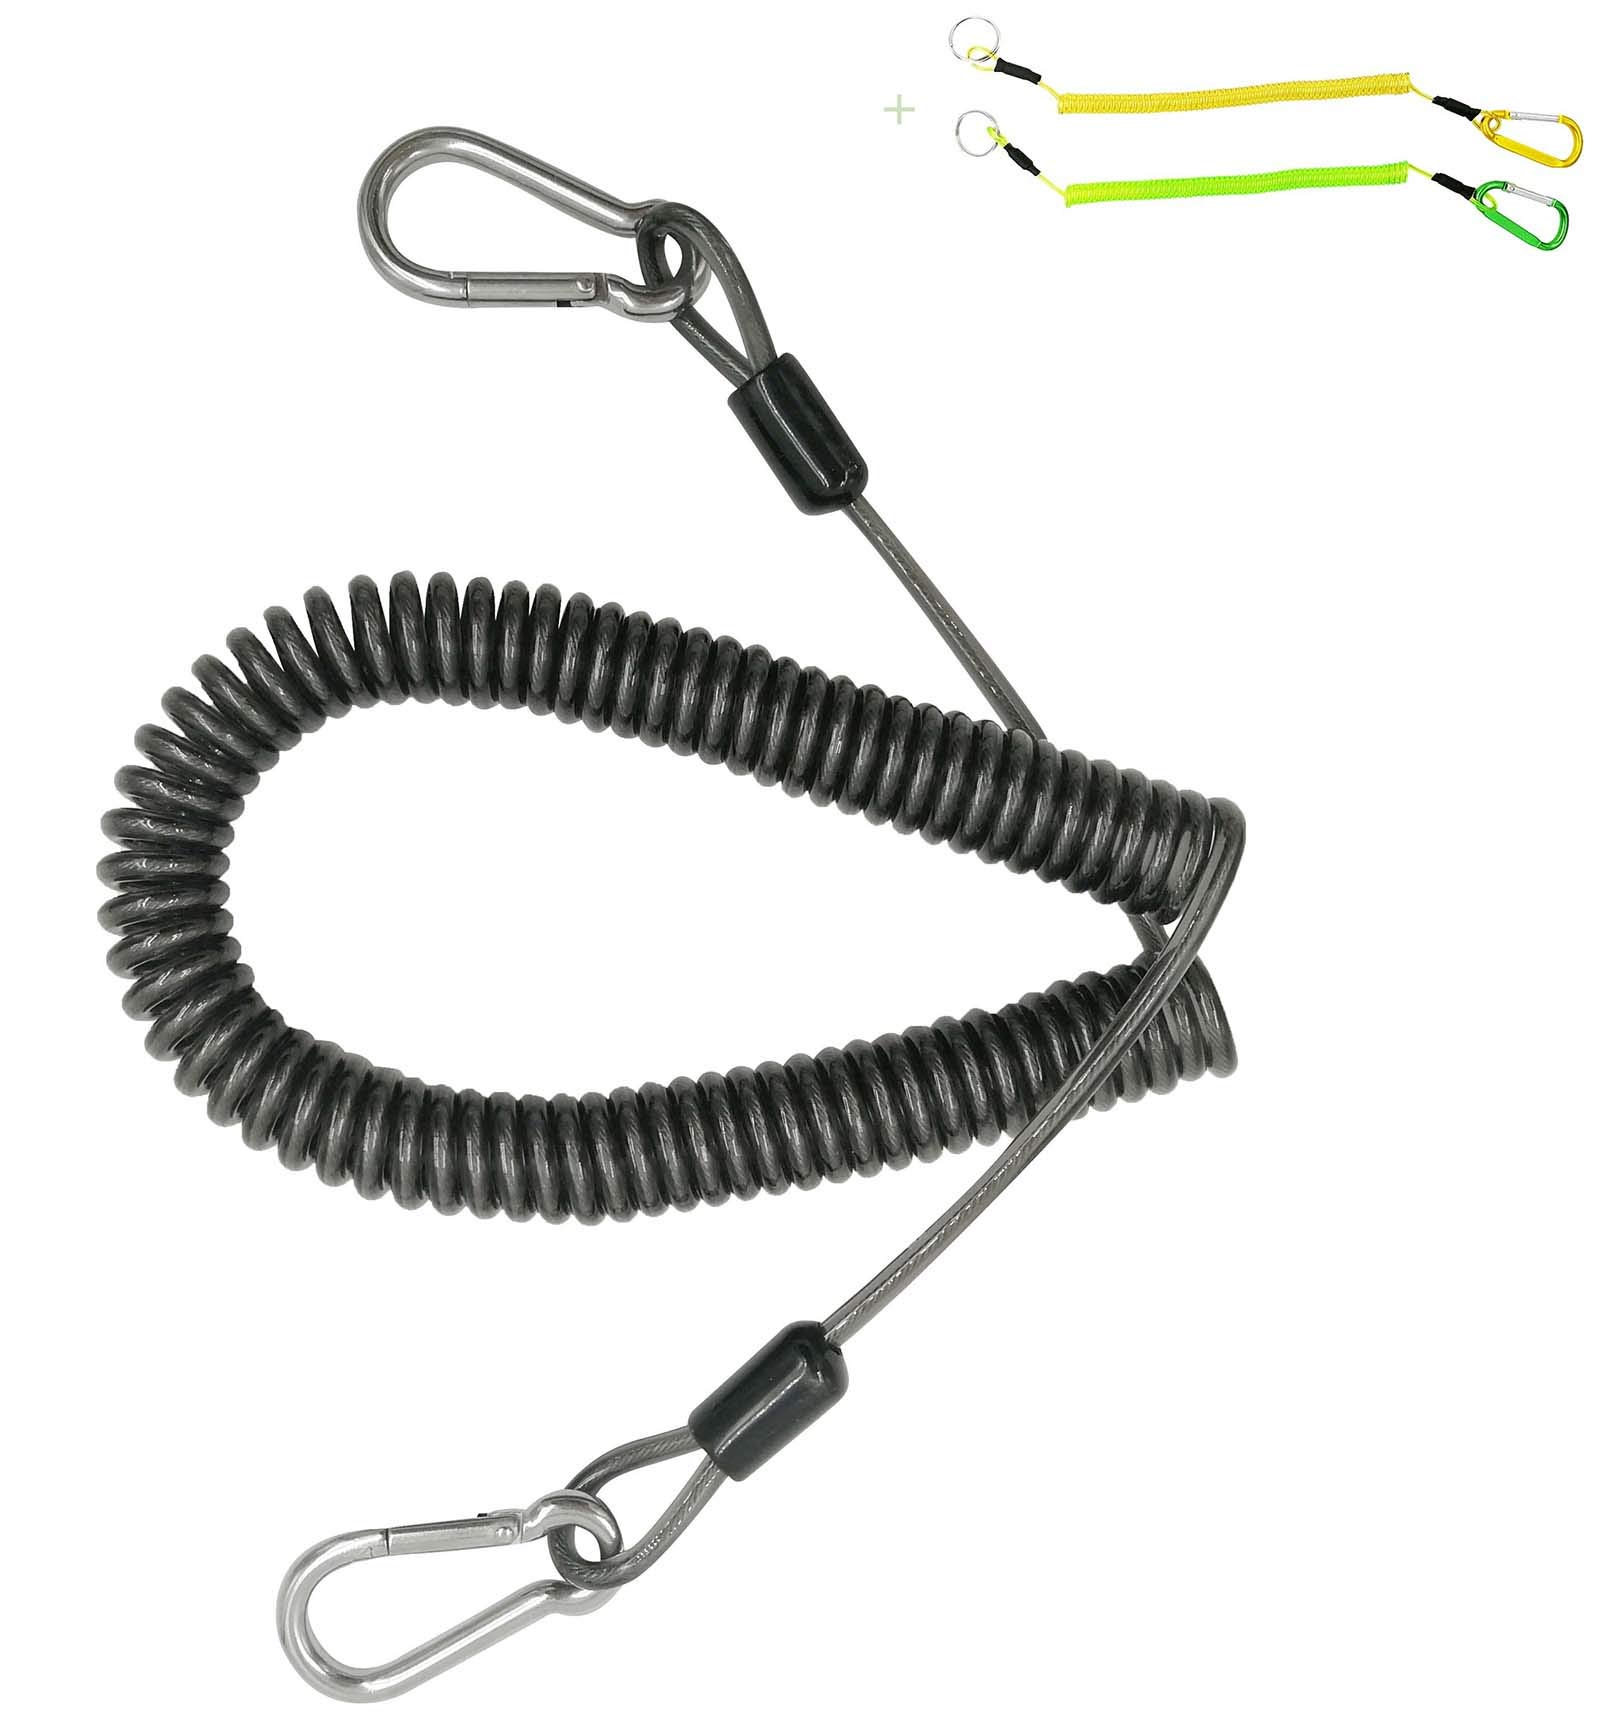 2pcs Retractable Steel Wire Coiled Lanyard Safety Rope /& Lock Carabiner 60cm